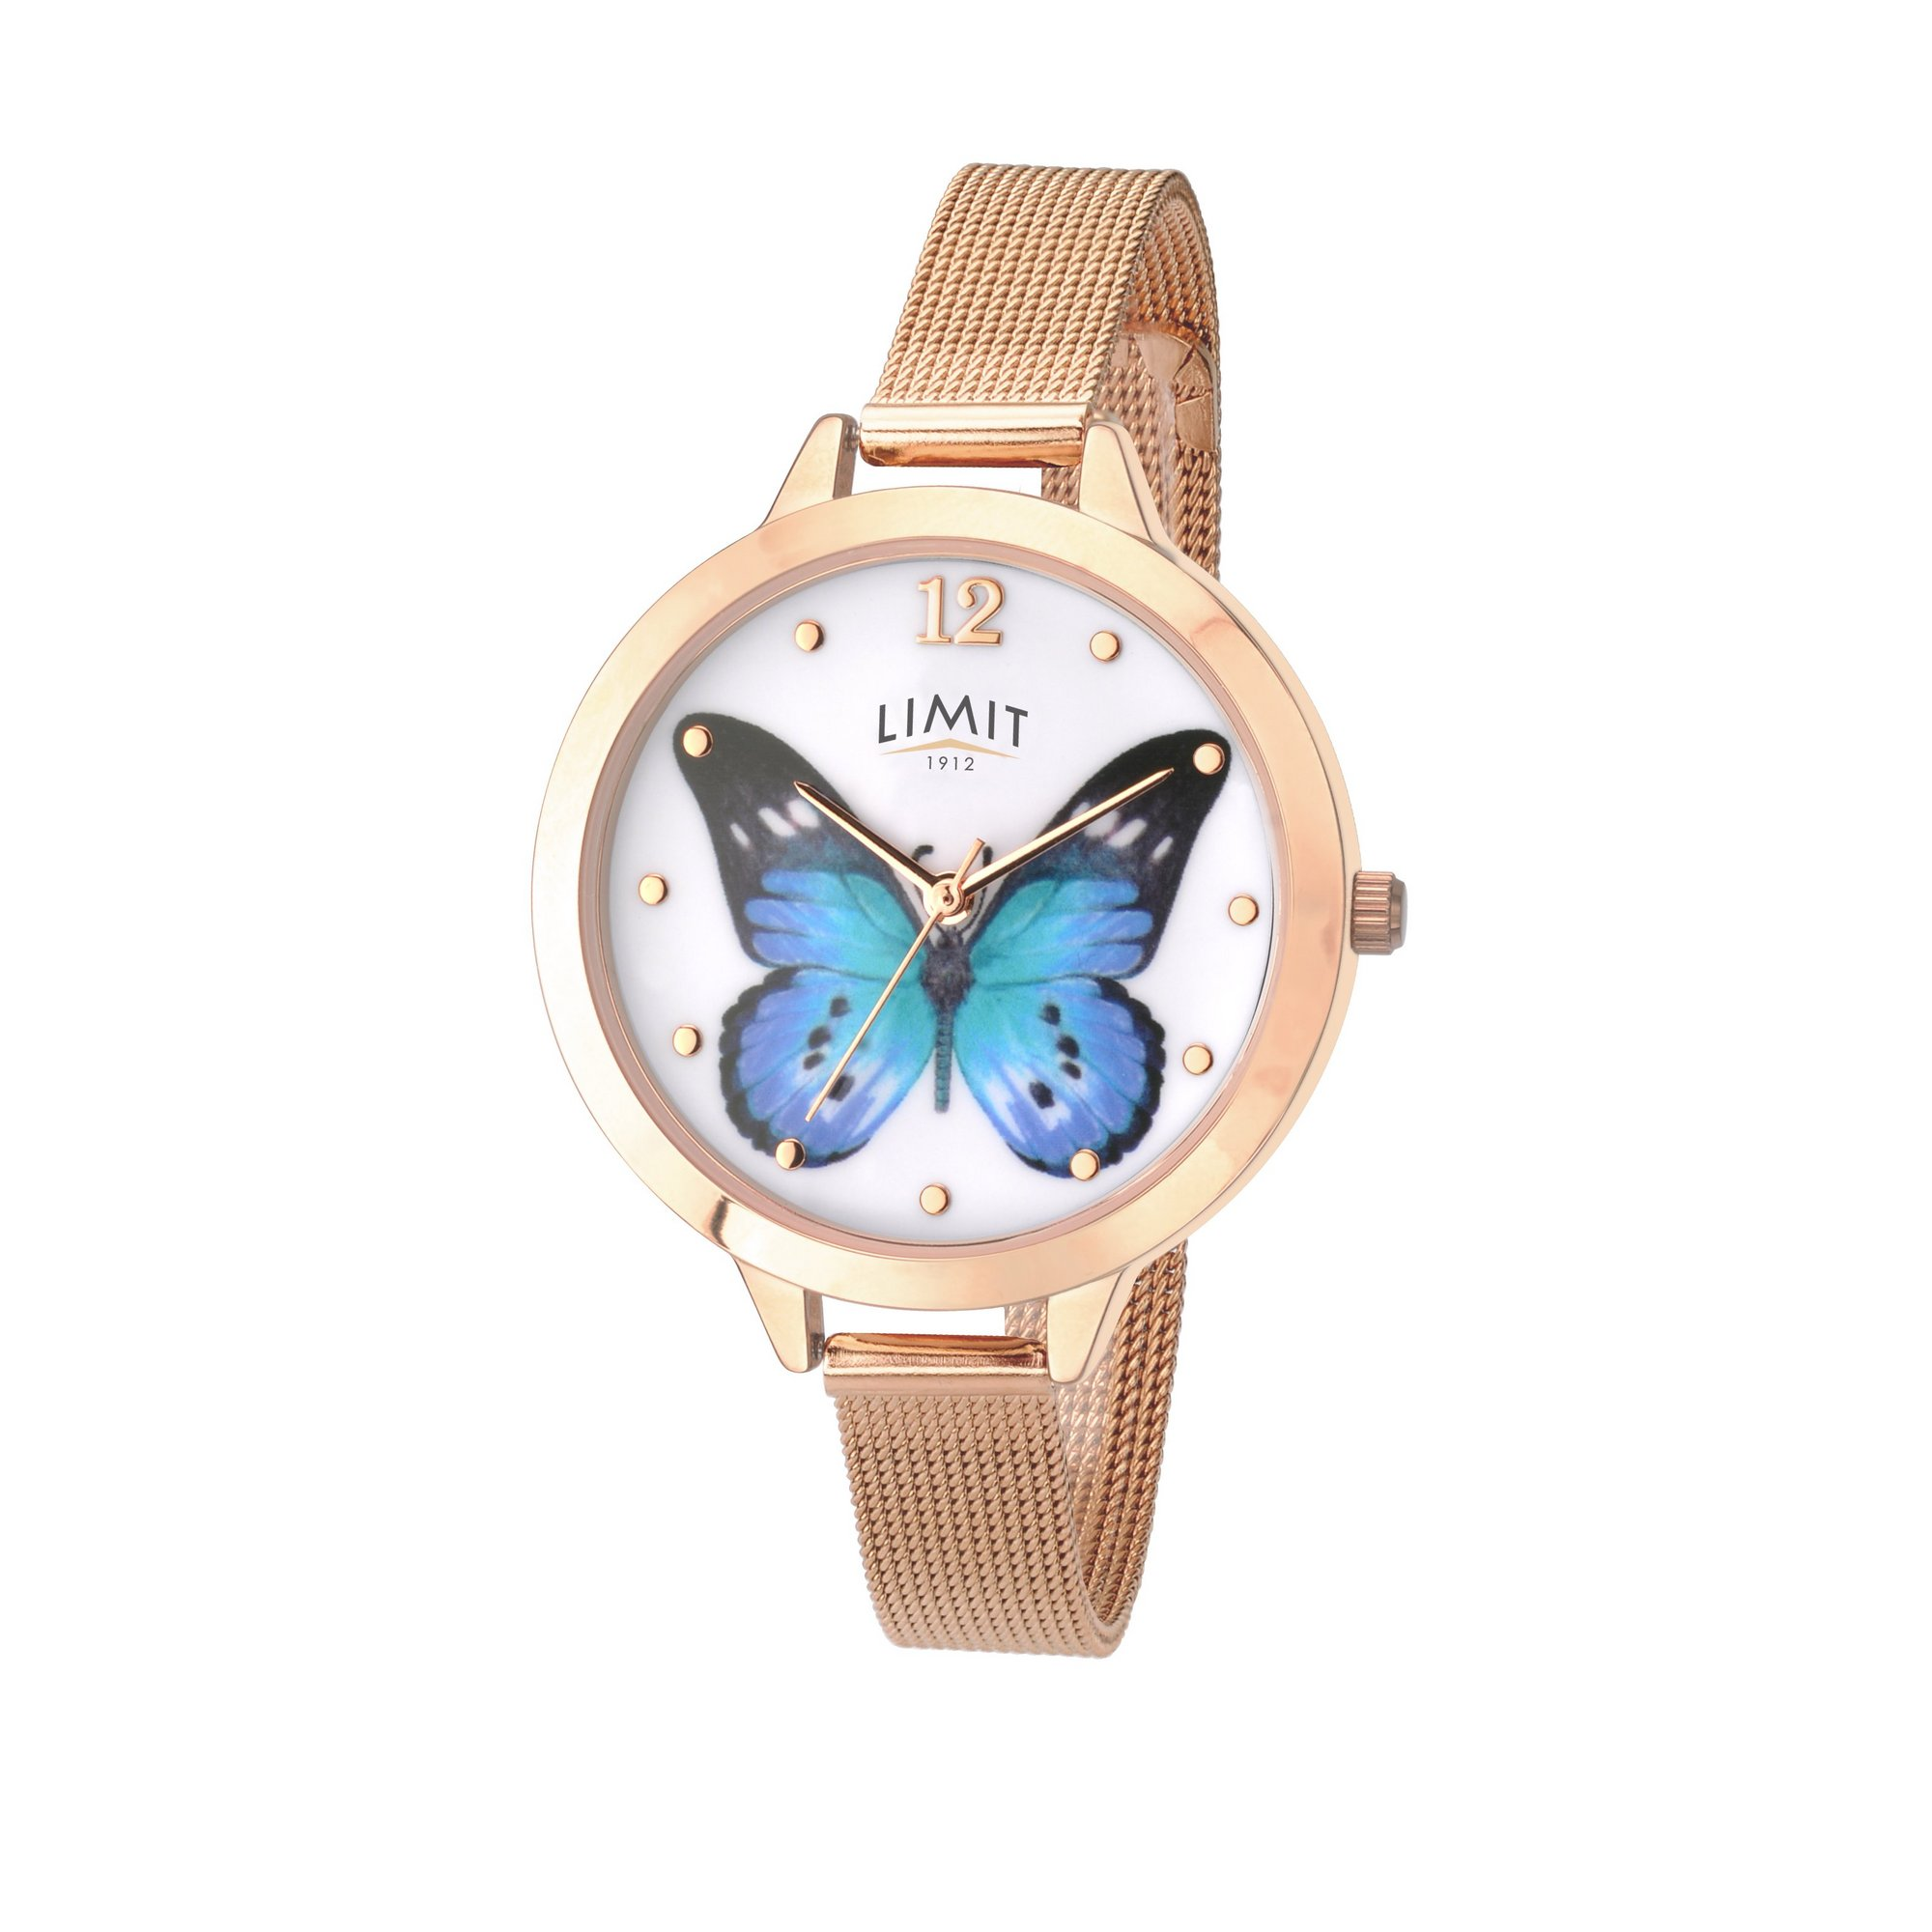 Image of Limit Ladies Rose Gold Plated Mesh Bracelet Watch